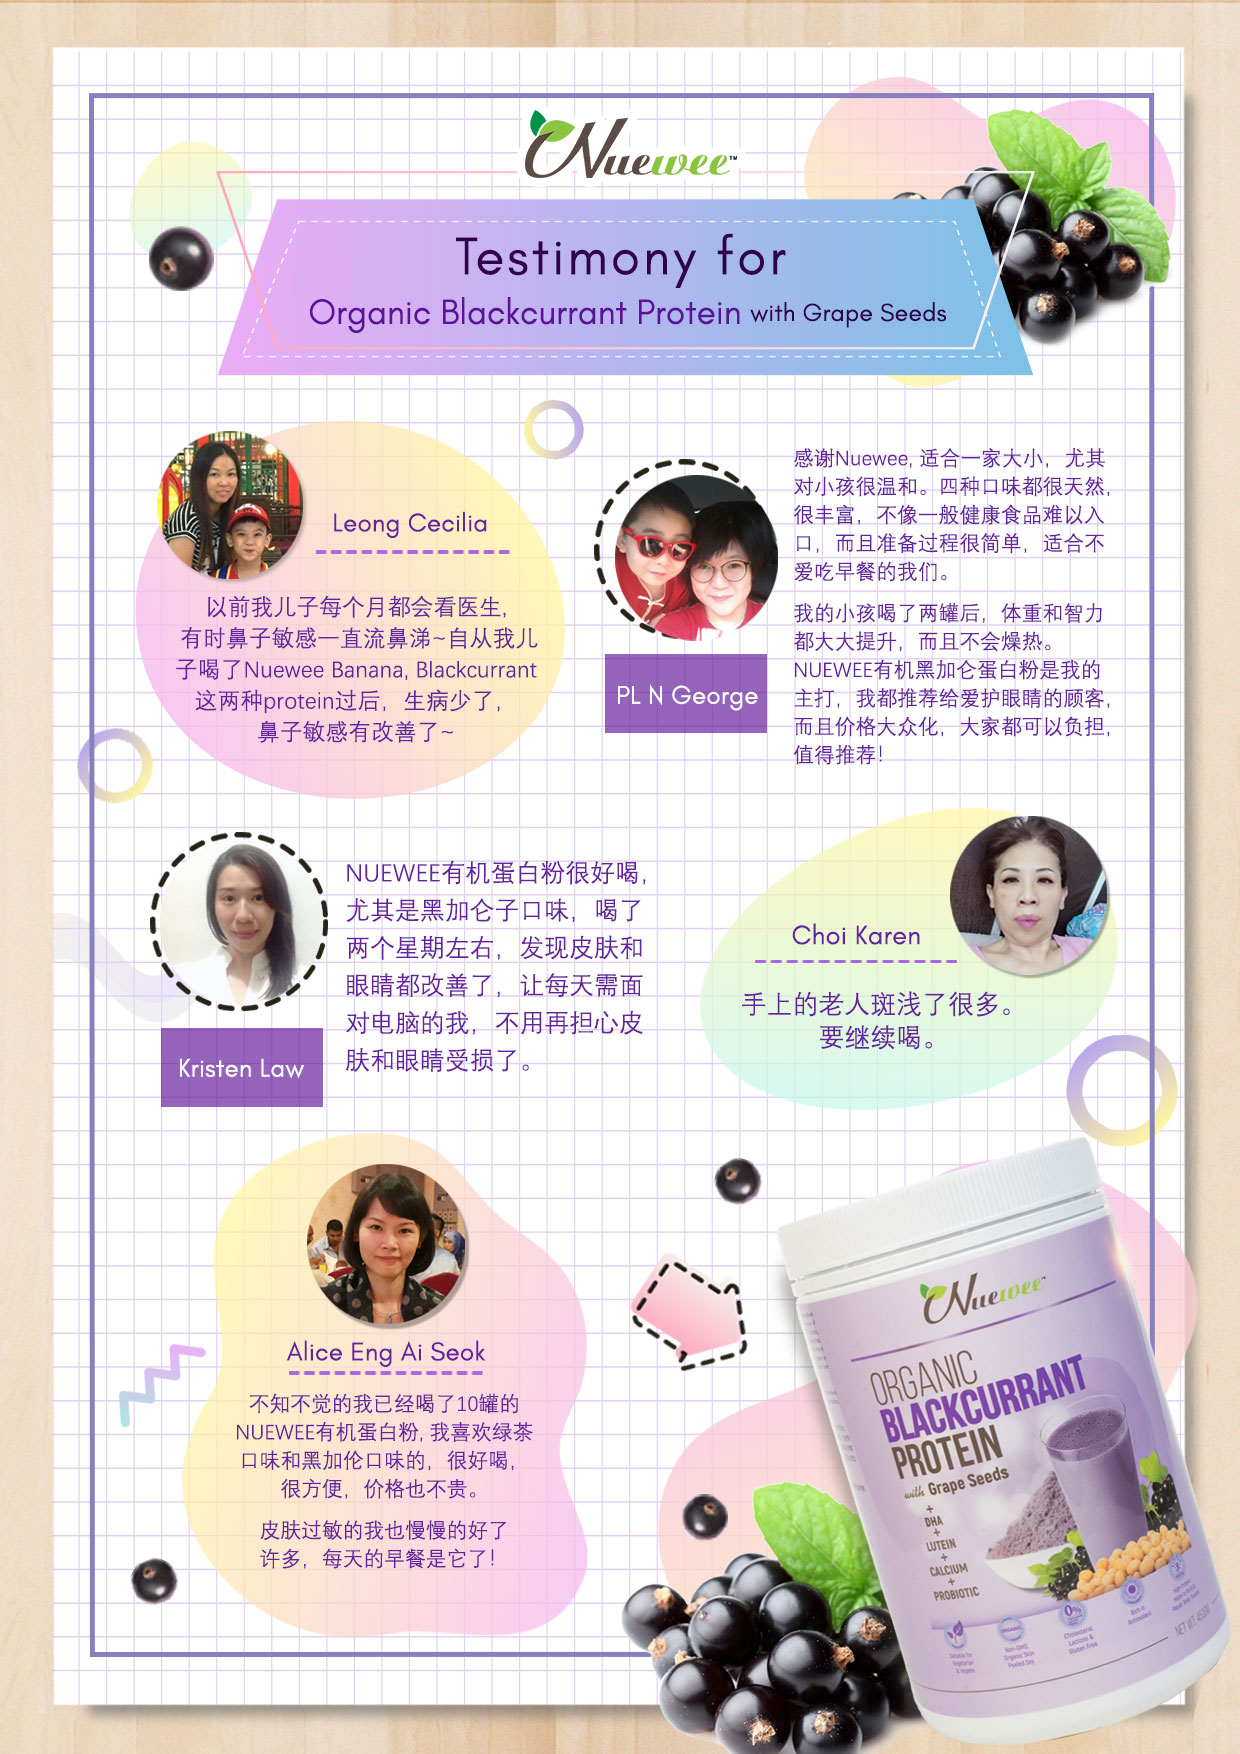 Testimony-of-Nuewee-Organic-Blackcurrant-Protein-with-Grape-Seeds.jpg